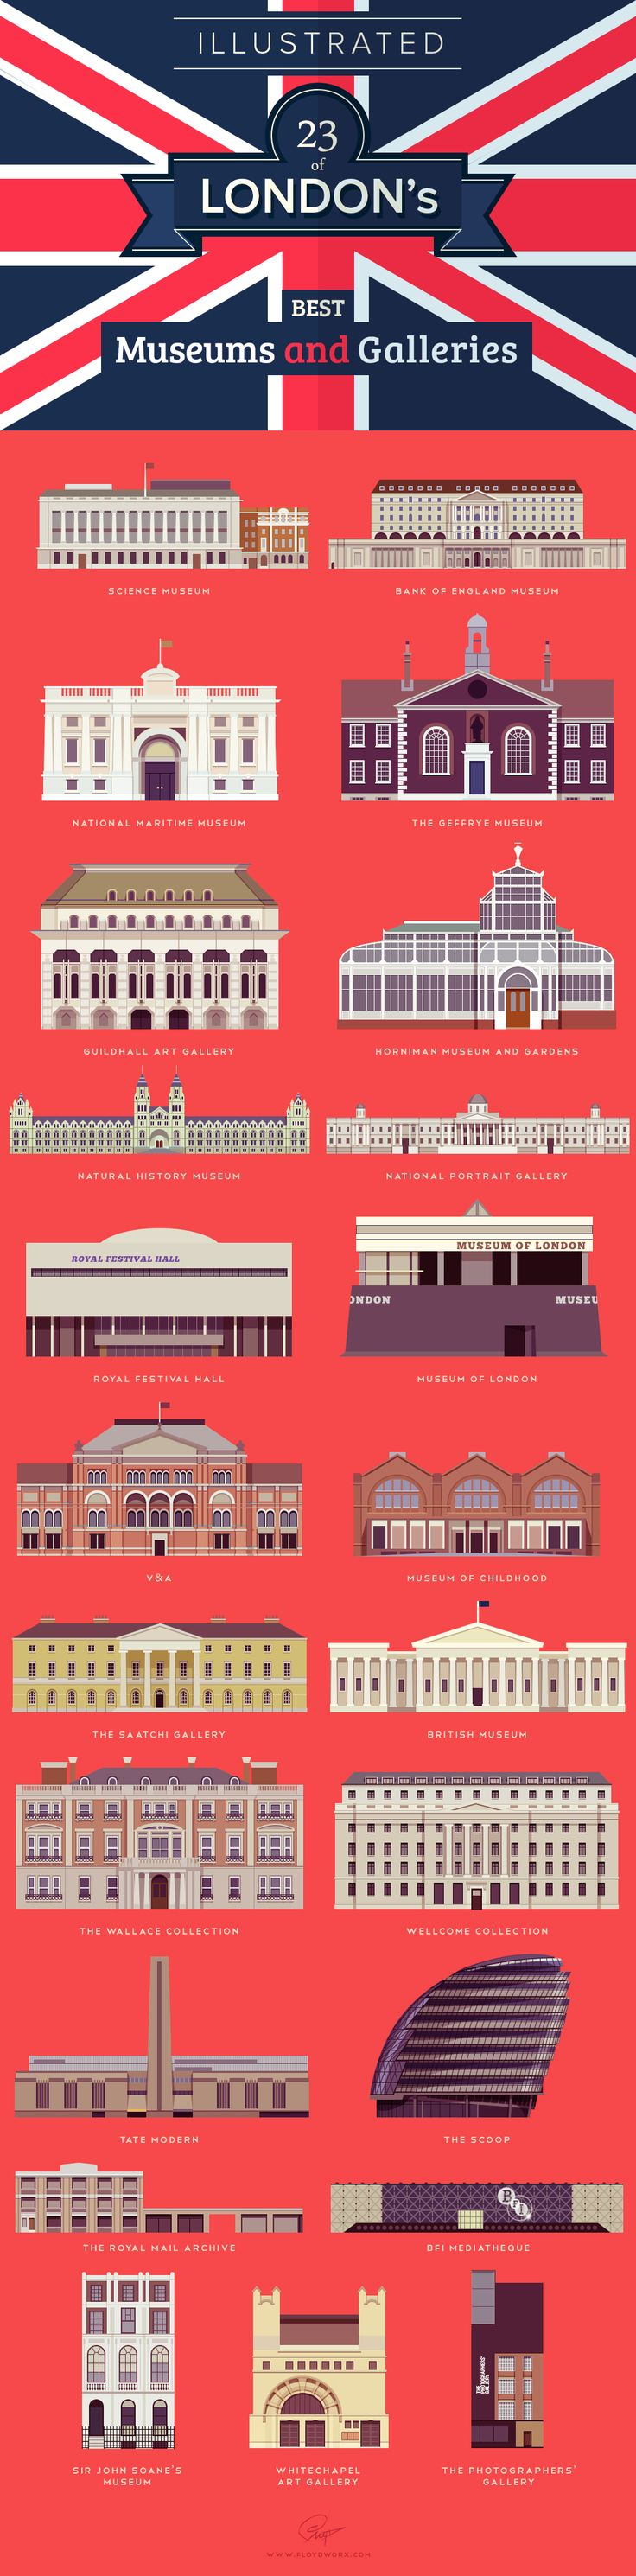 London's free museums and galleries